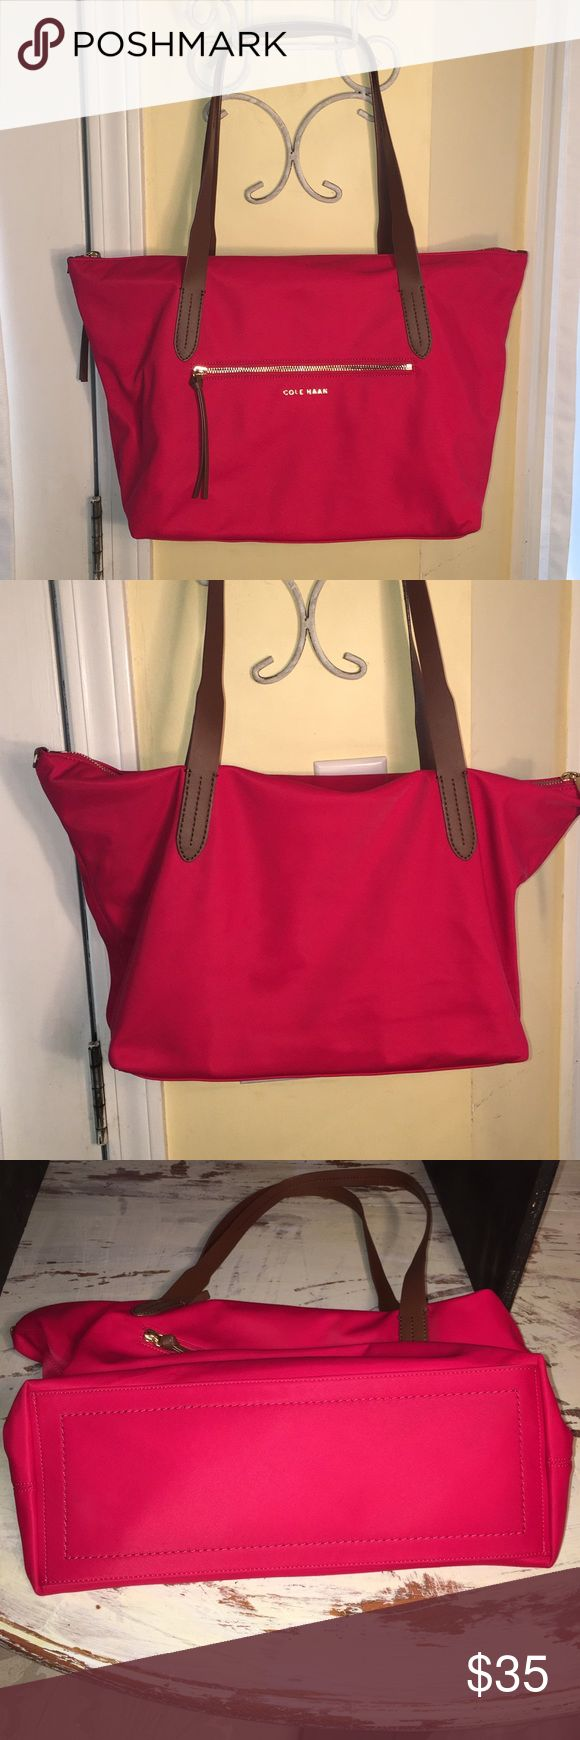 Red Cole Haan Purse with leather trim Excellent condition red nylon/cotton blend Cole Haan Purse with brown leather trim and gold accents Cole Haan Bags Totes